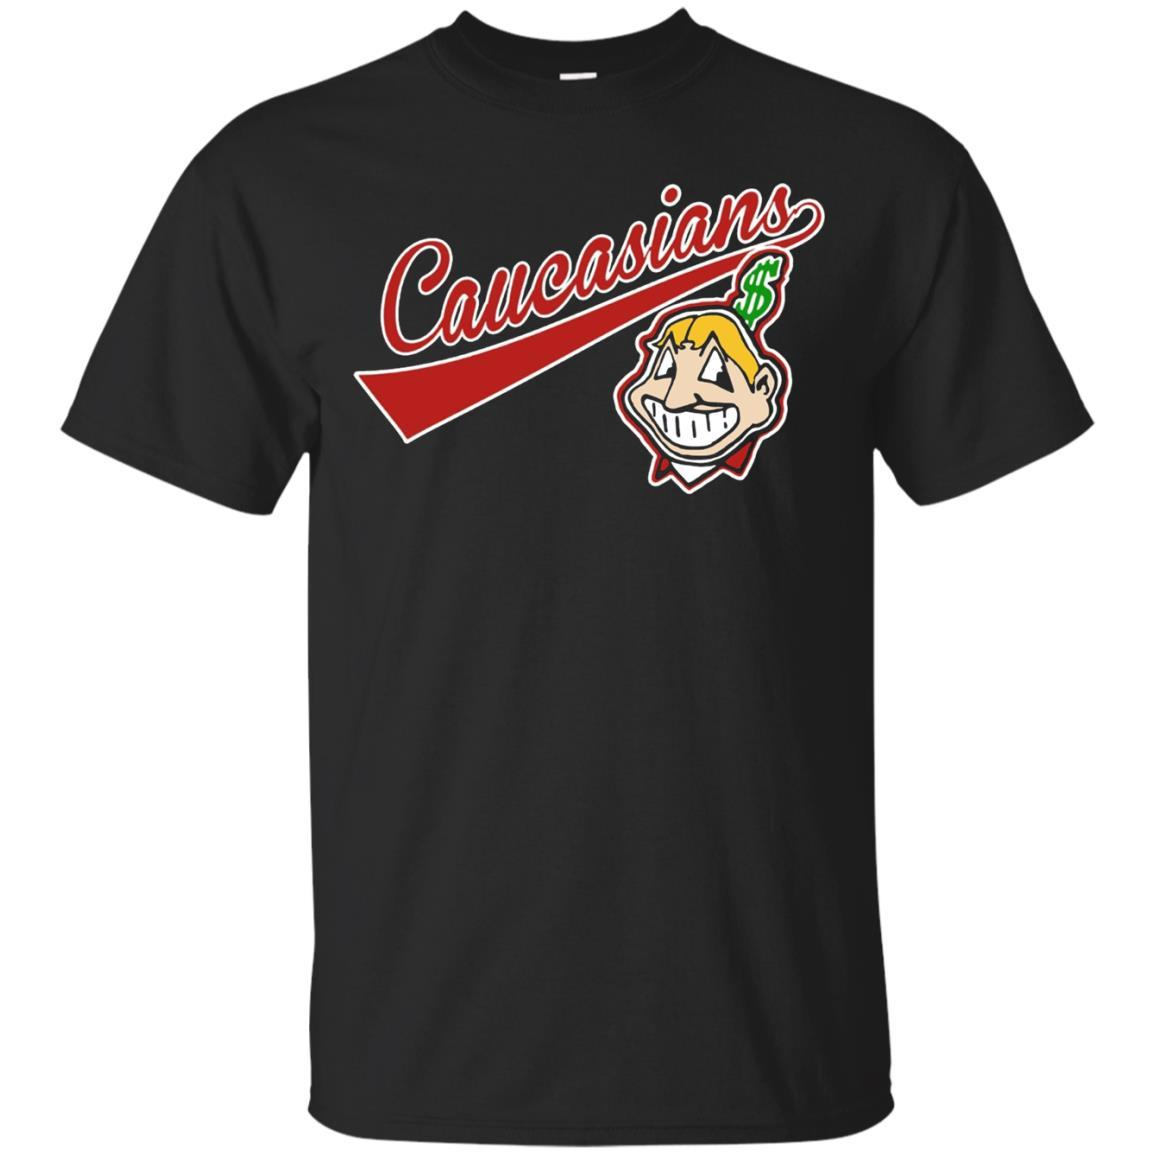 Cleveland Caucasians Native Go Indians T-Shirt Black / 5XL